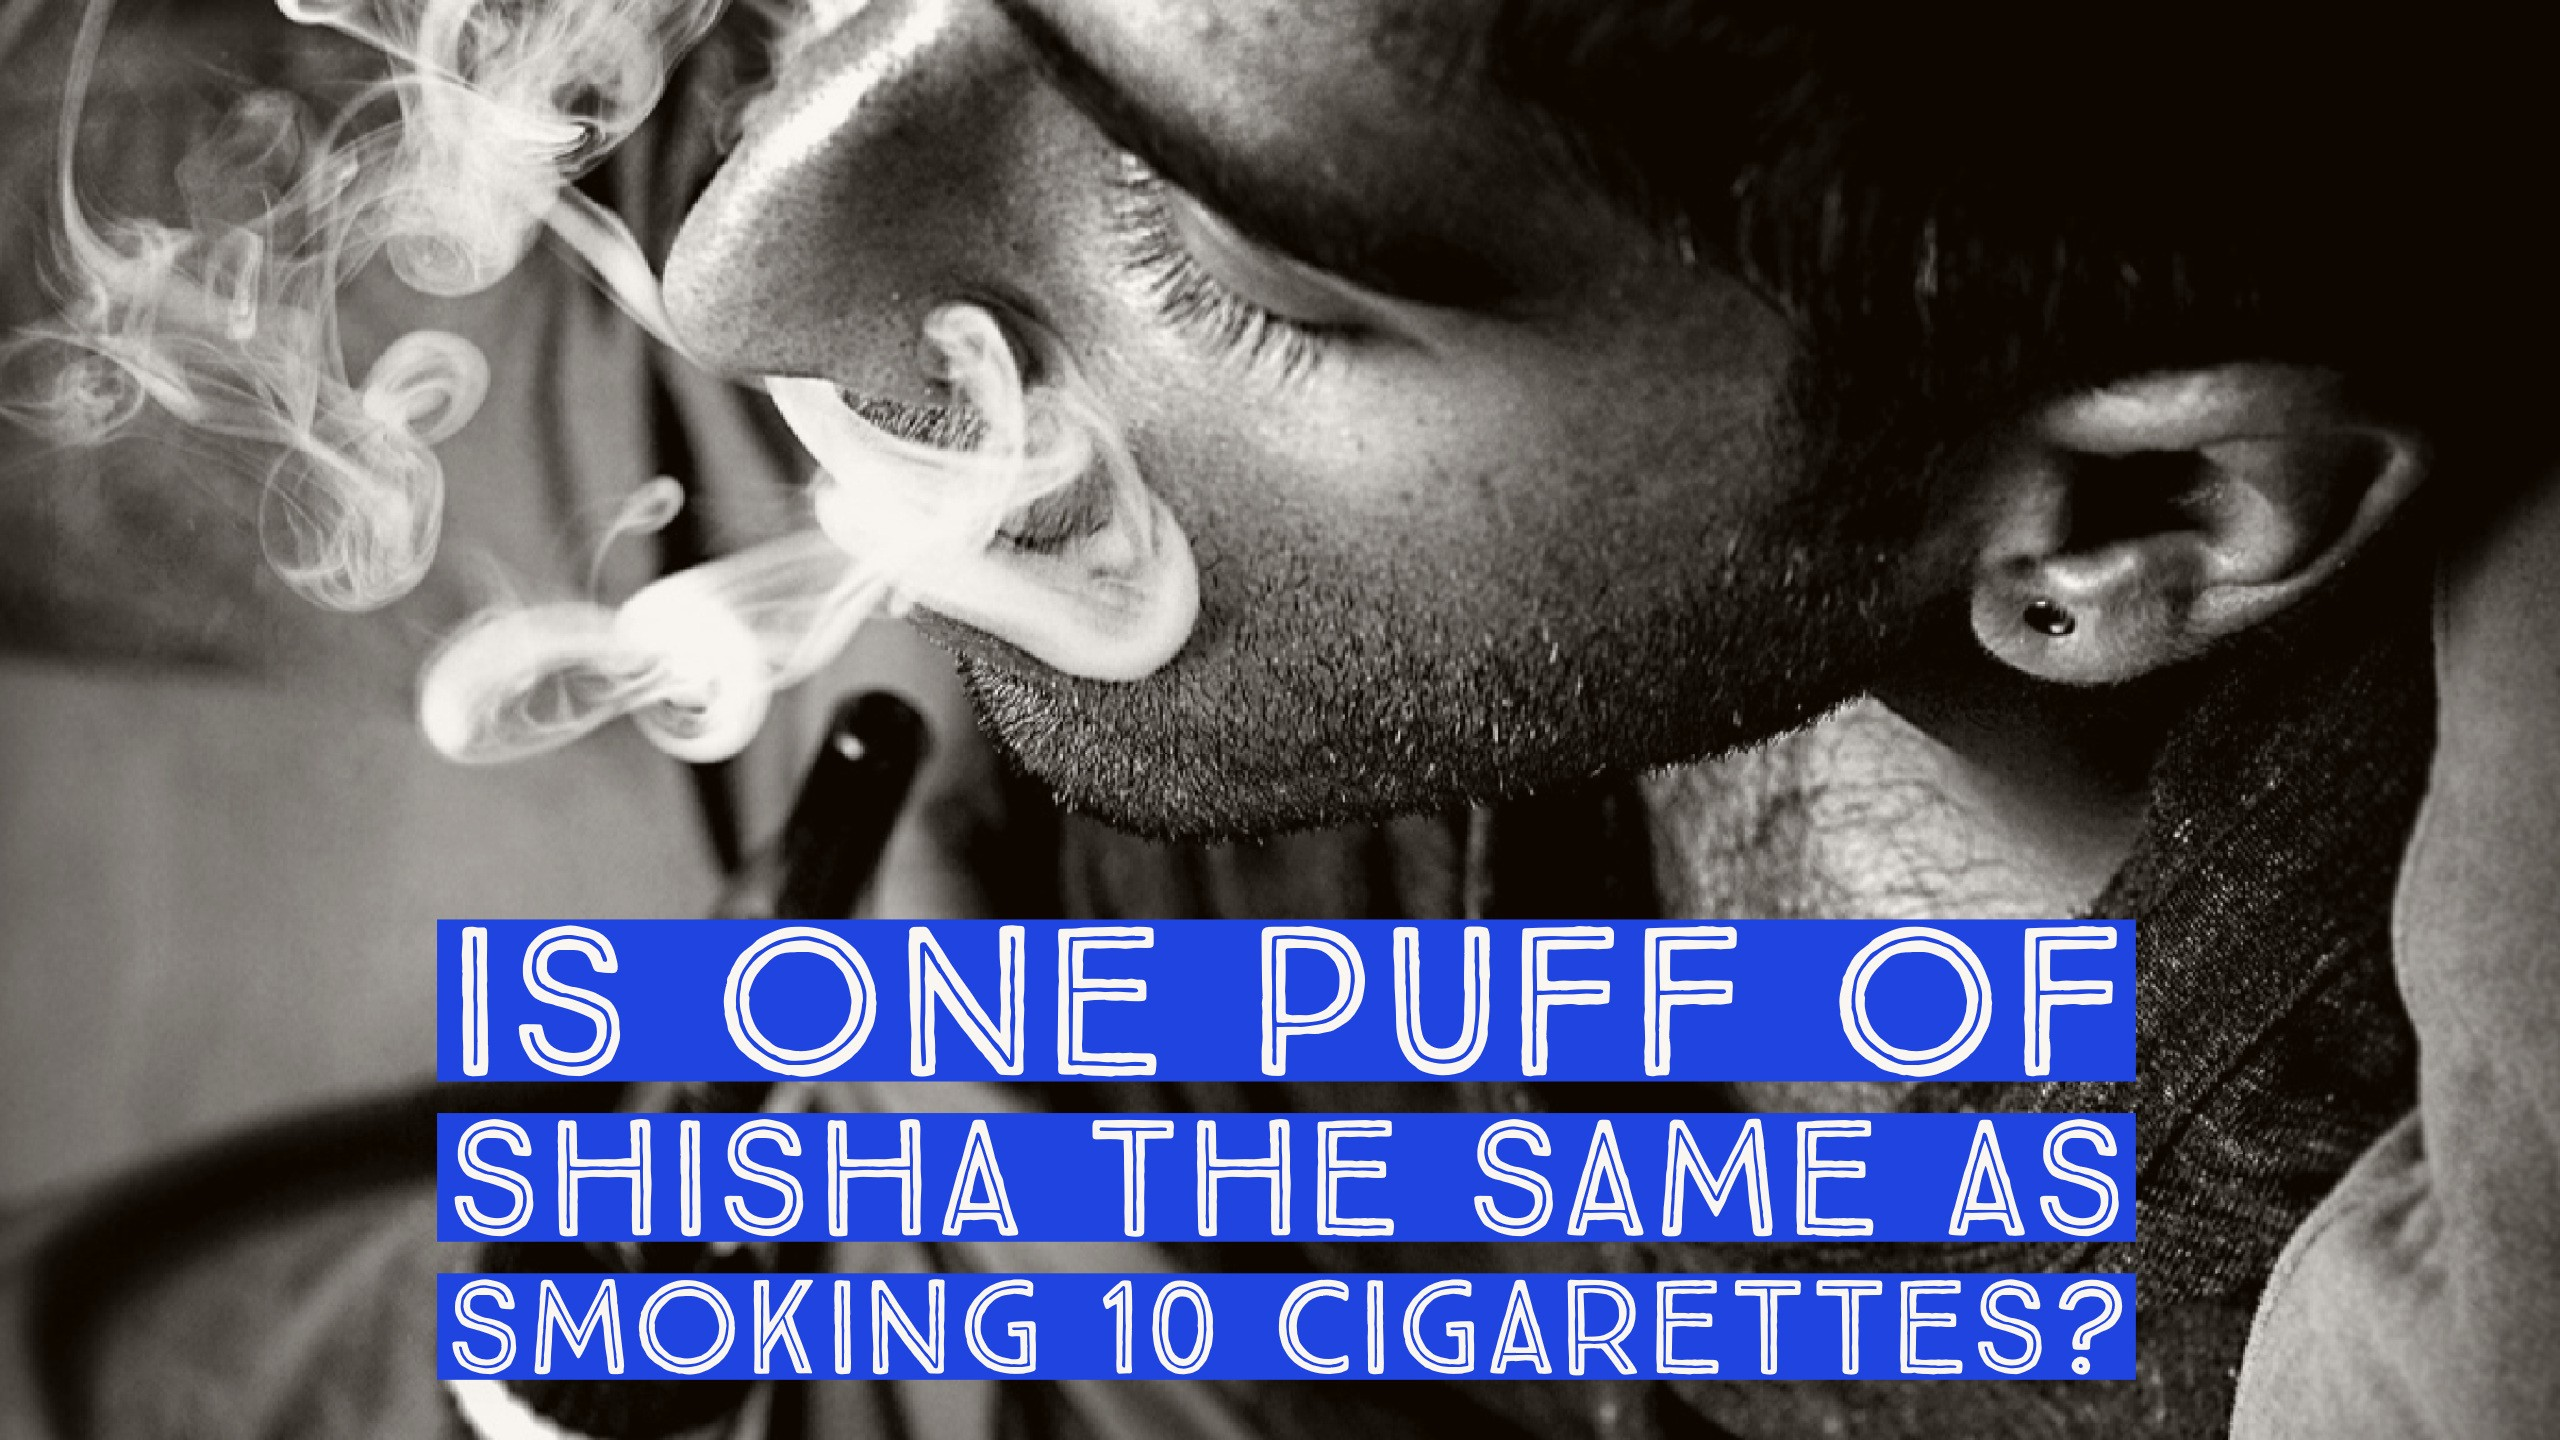 Is One Puff Of Shisha Equivalent To Smoking 10 Cigarettes?